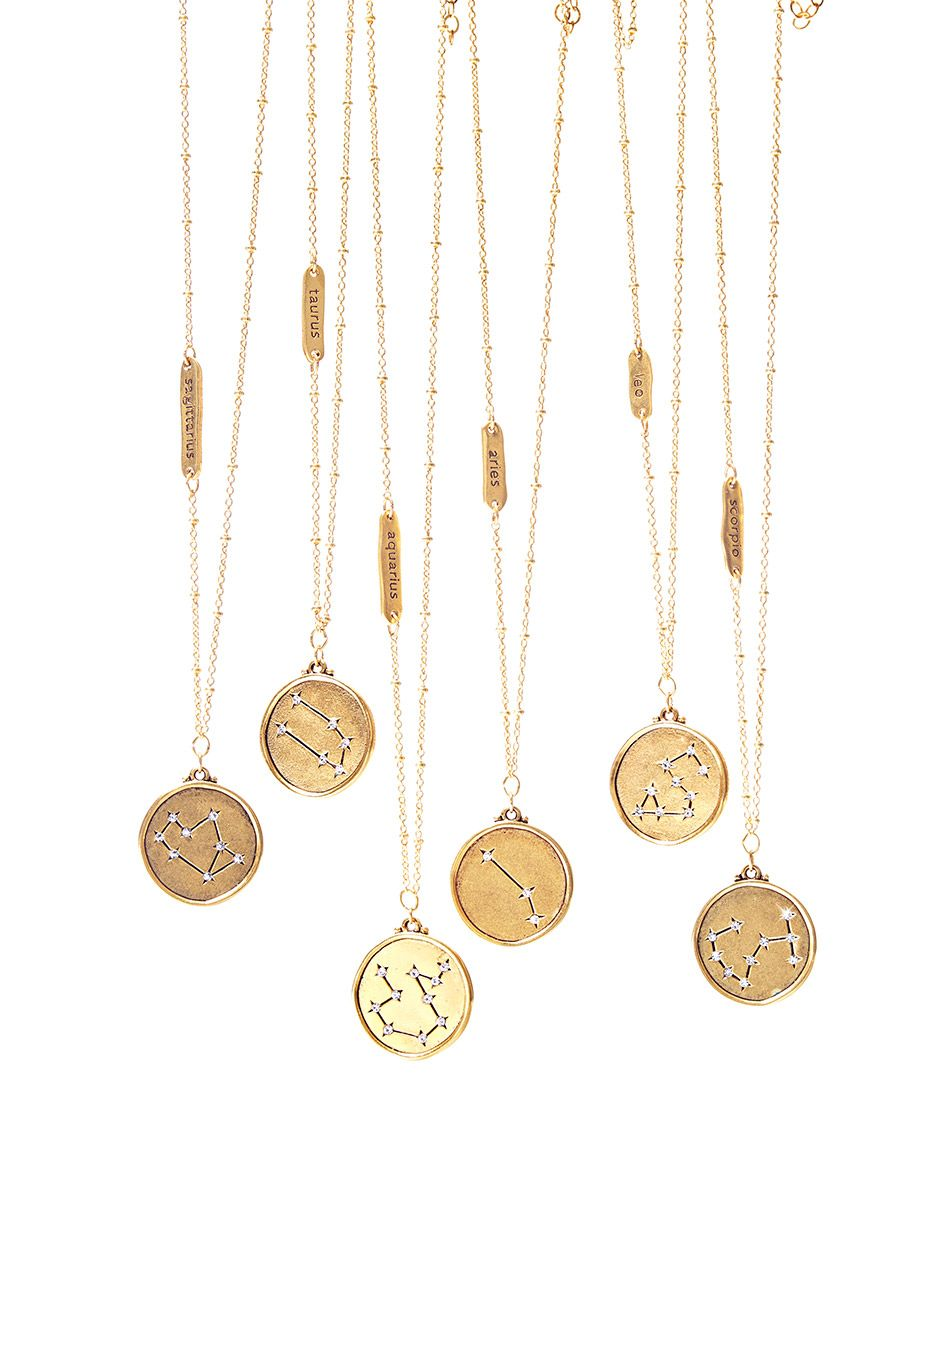 337f2b28f31b27 These 22-kt-gold-plated necklaces, featuring zodiac constellations  punctuated with sparkly crystals, make a great, glittery gift even when  Mercury is in ...